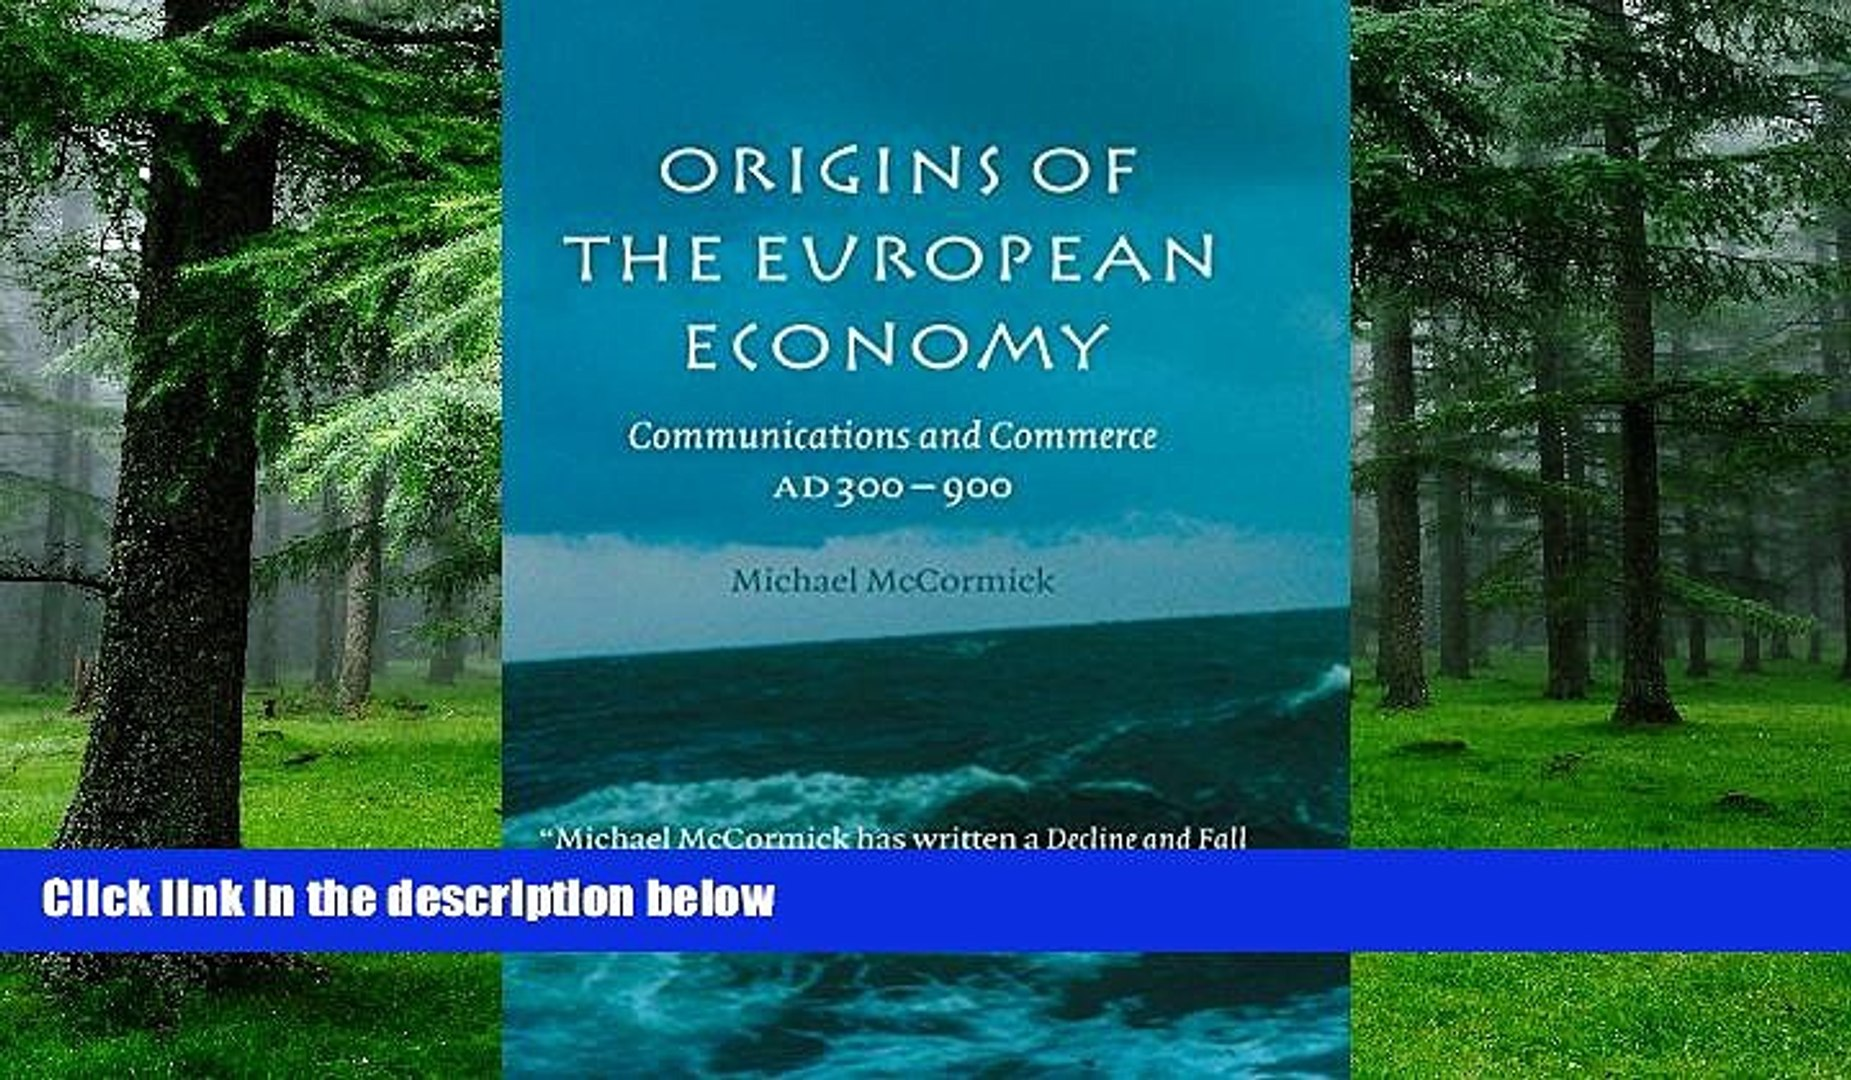 Origins of the European Economy Communications and Commerce AD 300-900